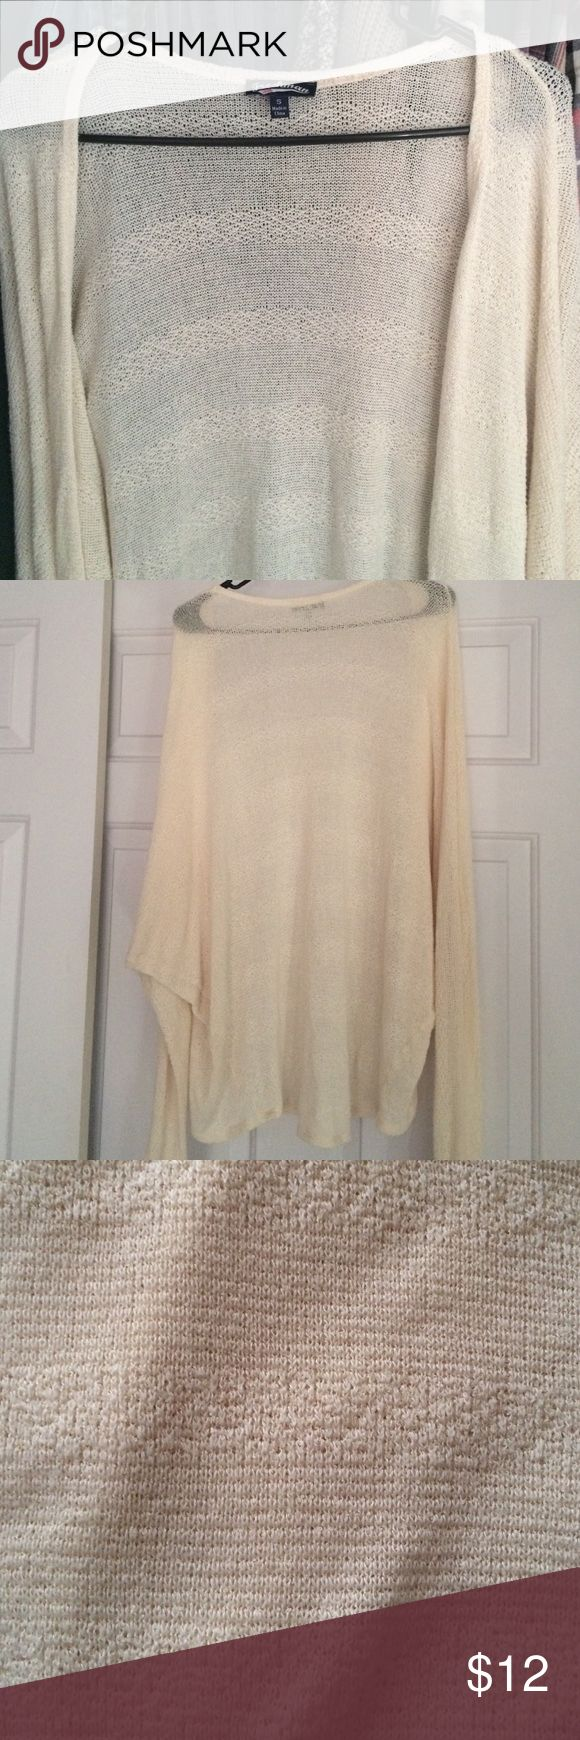 Dolman sleeved oversized cardigan Freshman brand oversized cream cardigan. Has a really cool striped texture. It is a small, but it is pretty big, it looks great with dresses. Reason for selling is just that it's not what I want anymore. It is pretty long, I'm about 5'4 and it goes down to my thighs. Freshman Sweaters Cardigans